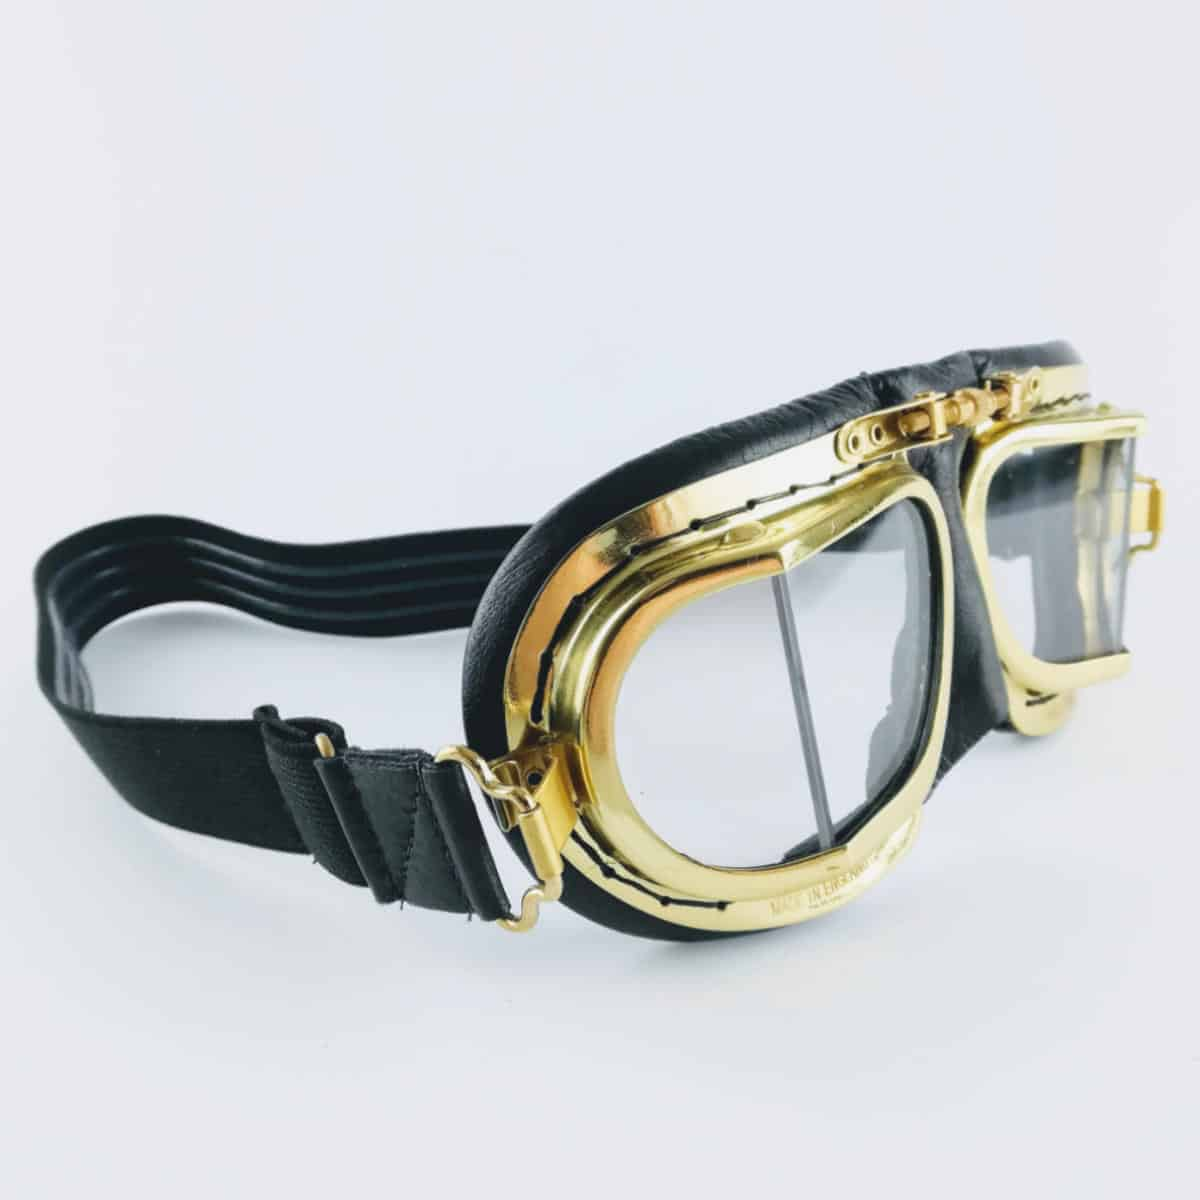 Brass goggles - Unique gifts for men